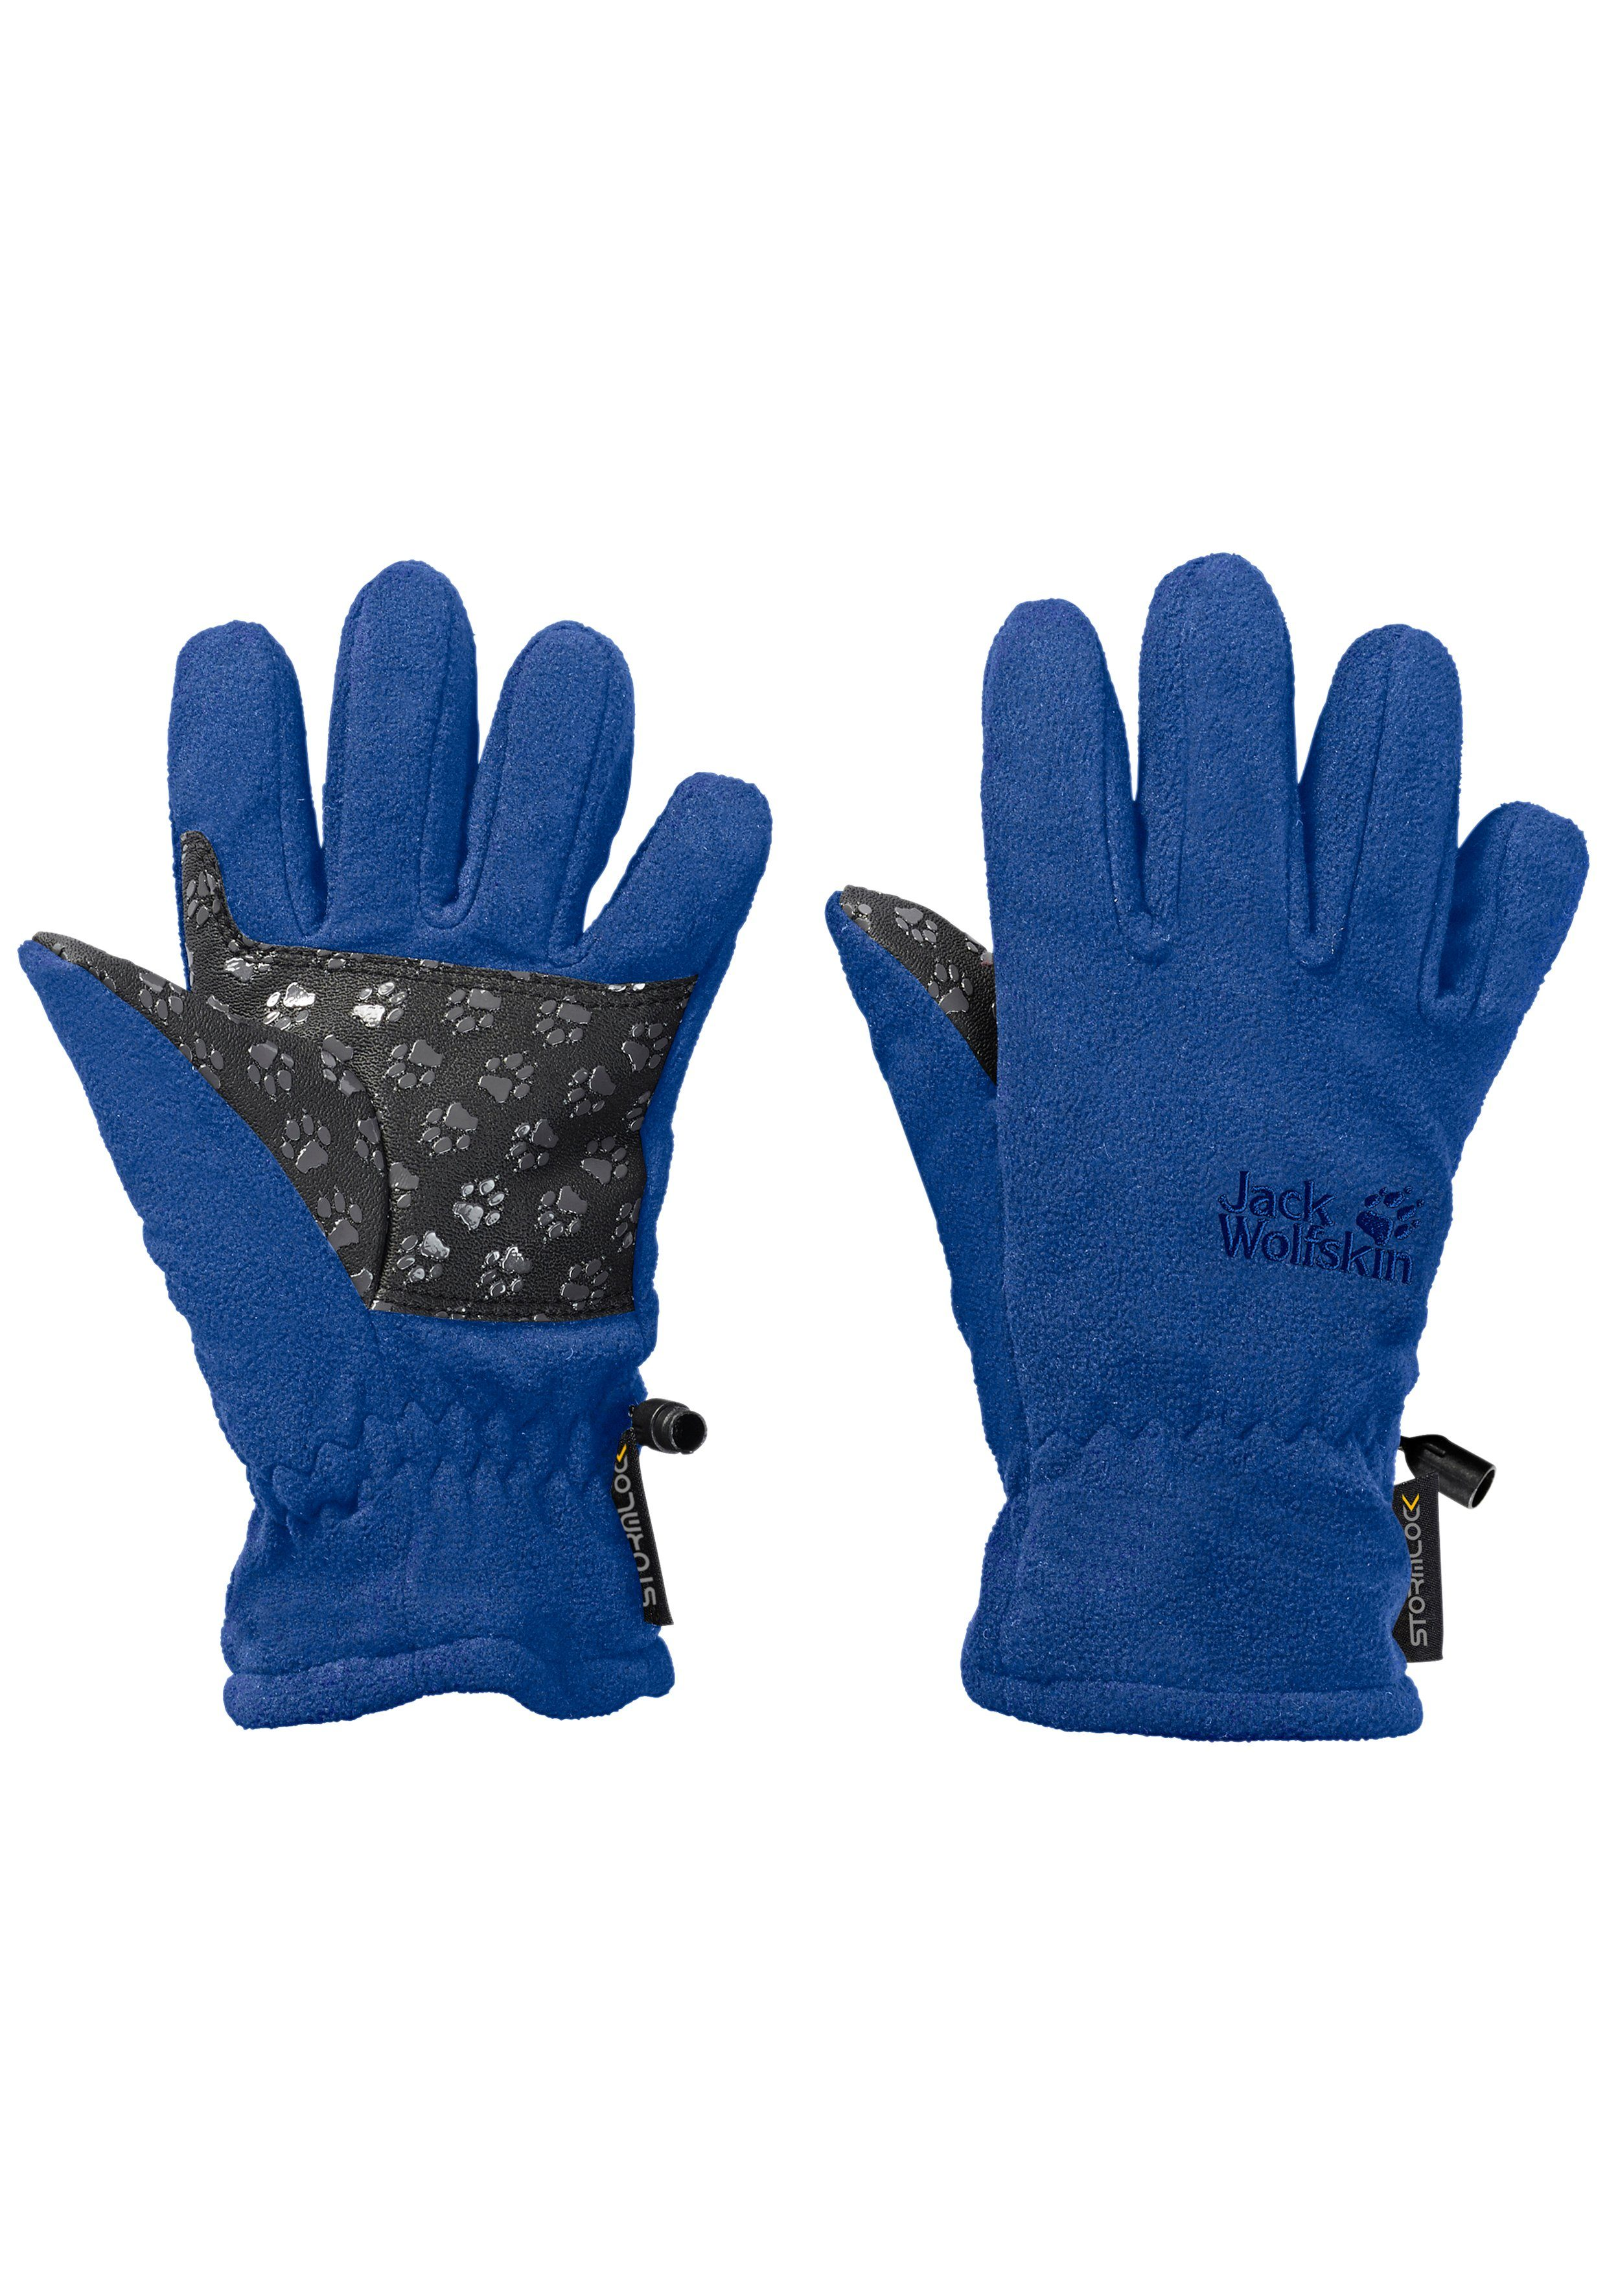 Scotch /& Soda Herren Double-Layered Leather and Knitted Gloves Handschuhe